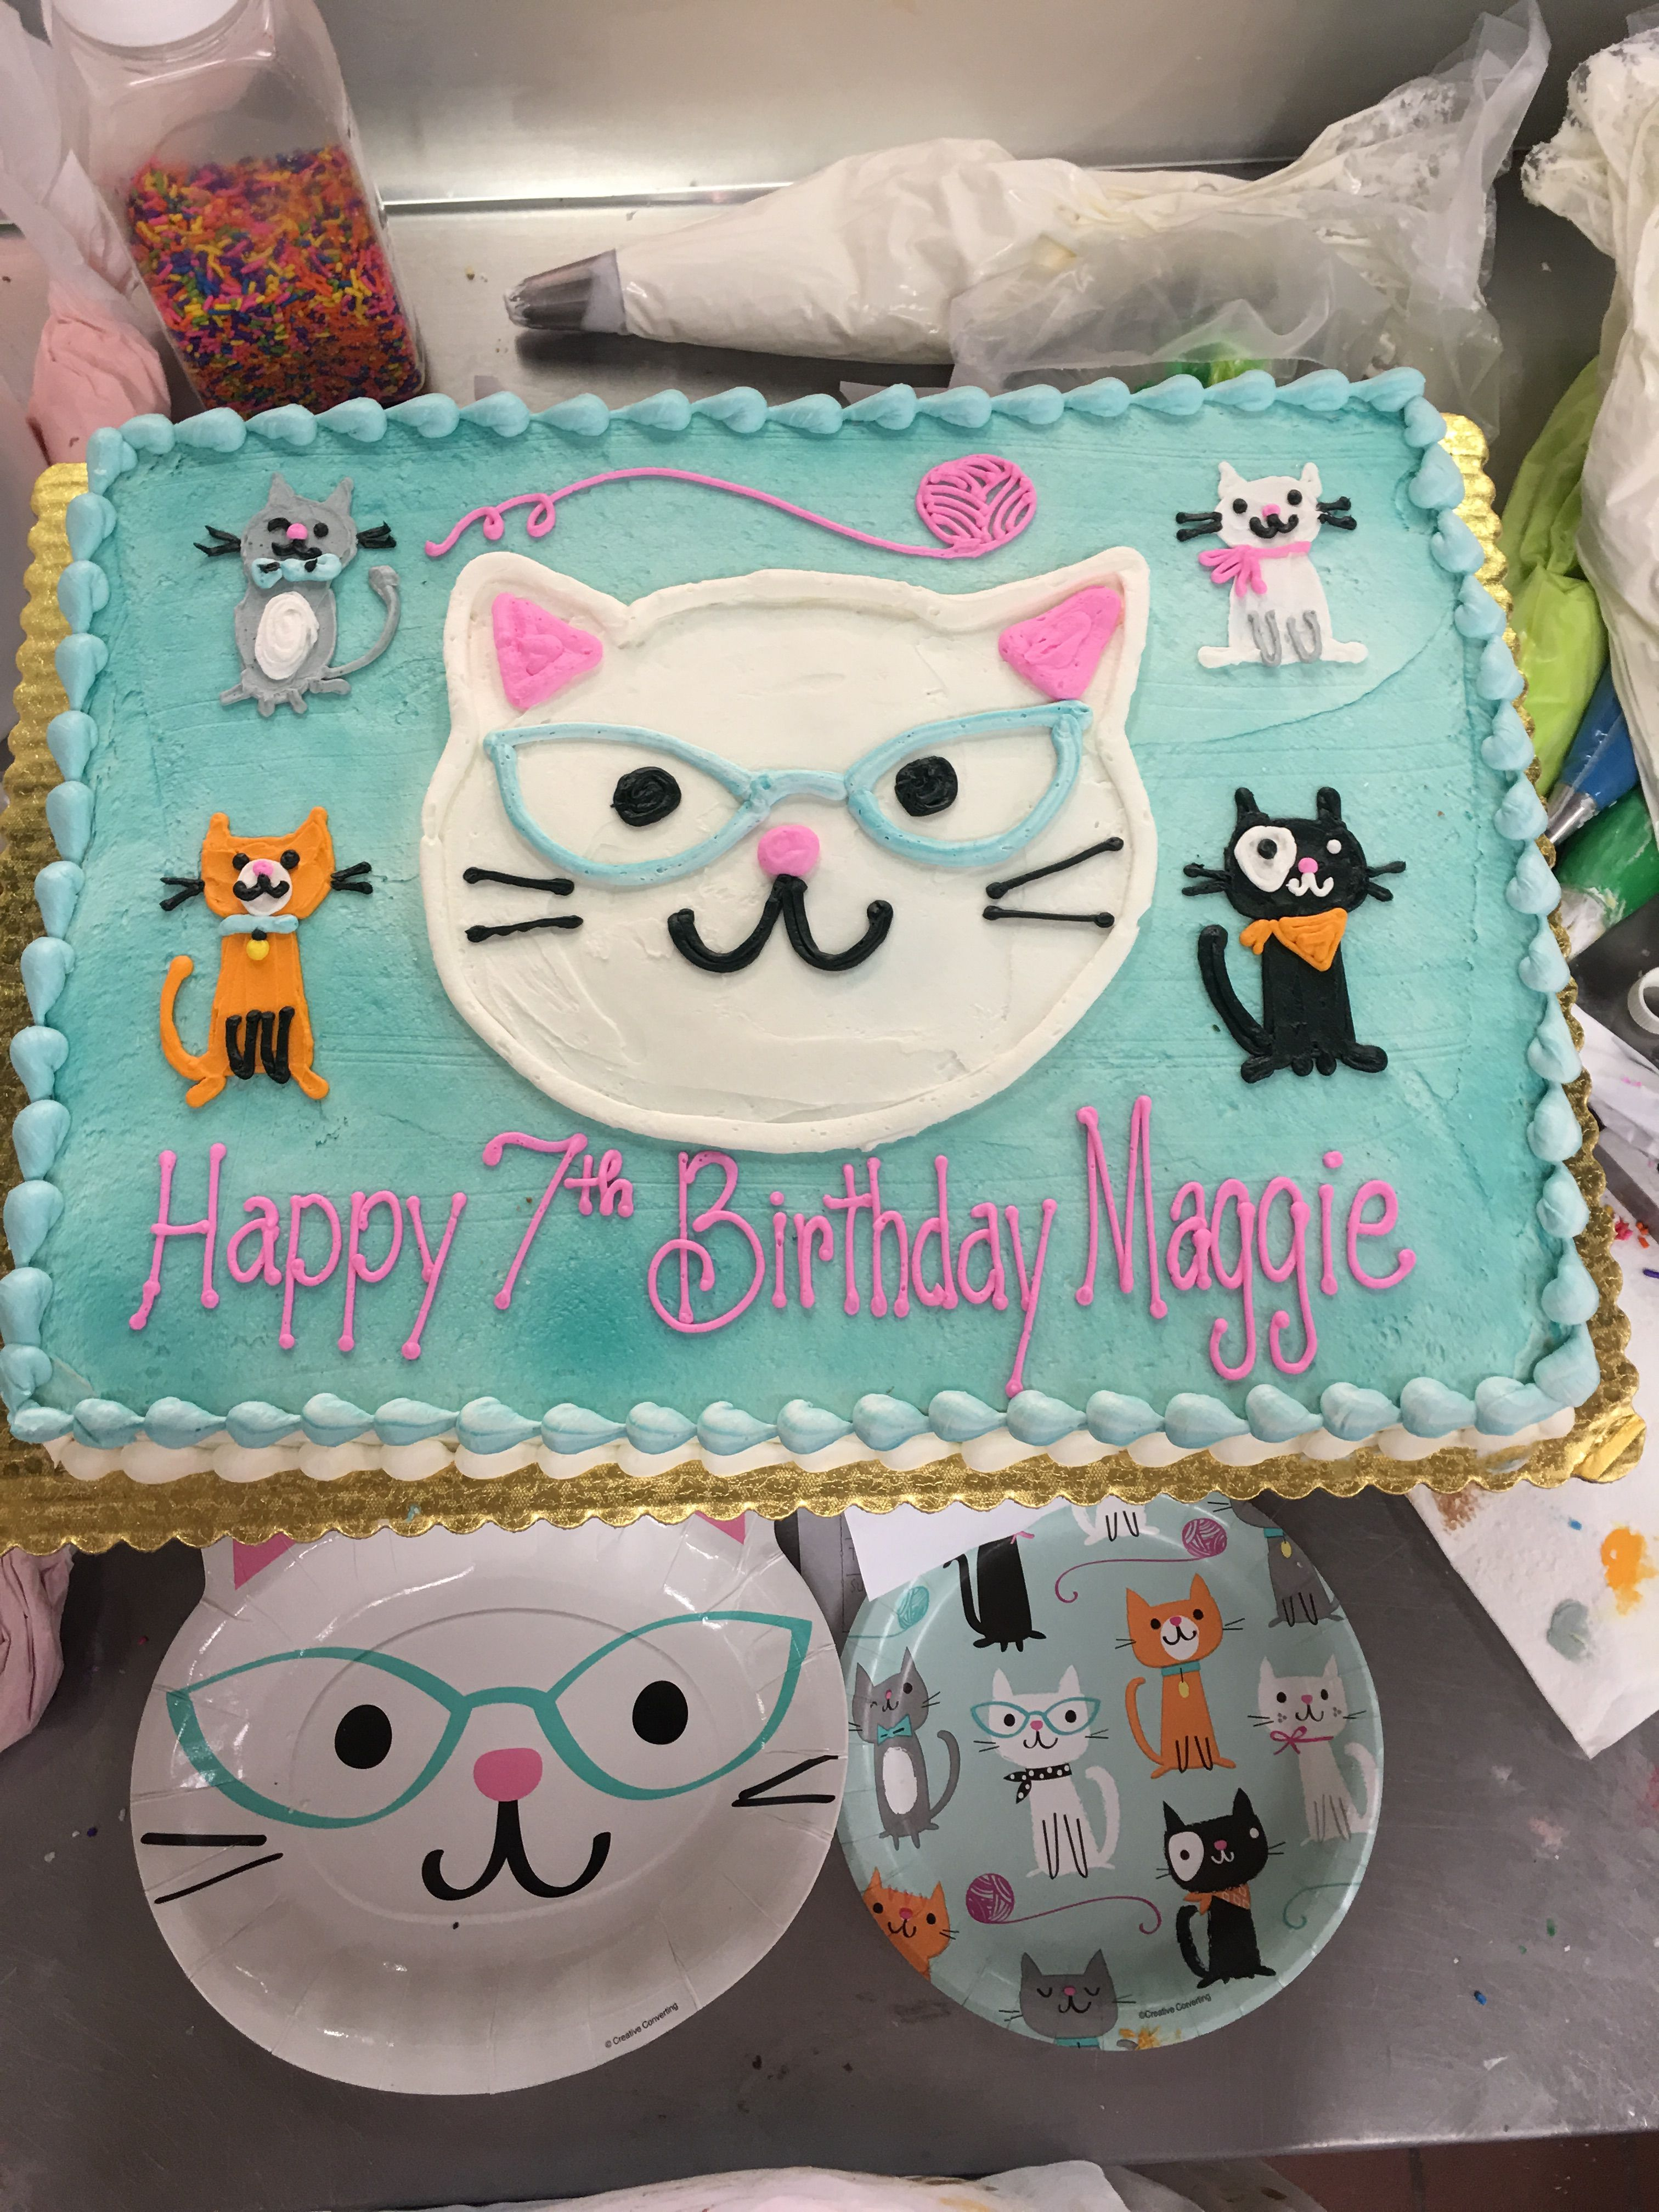 Cats Meow Edible Party Cake Image Topper Frosting Icing Sheet